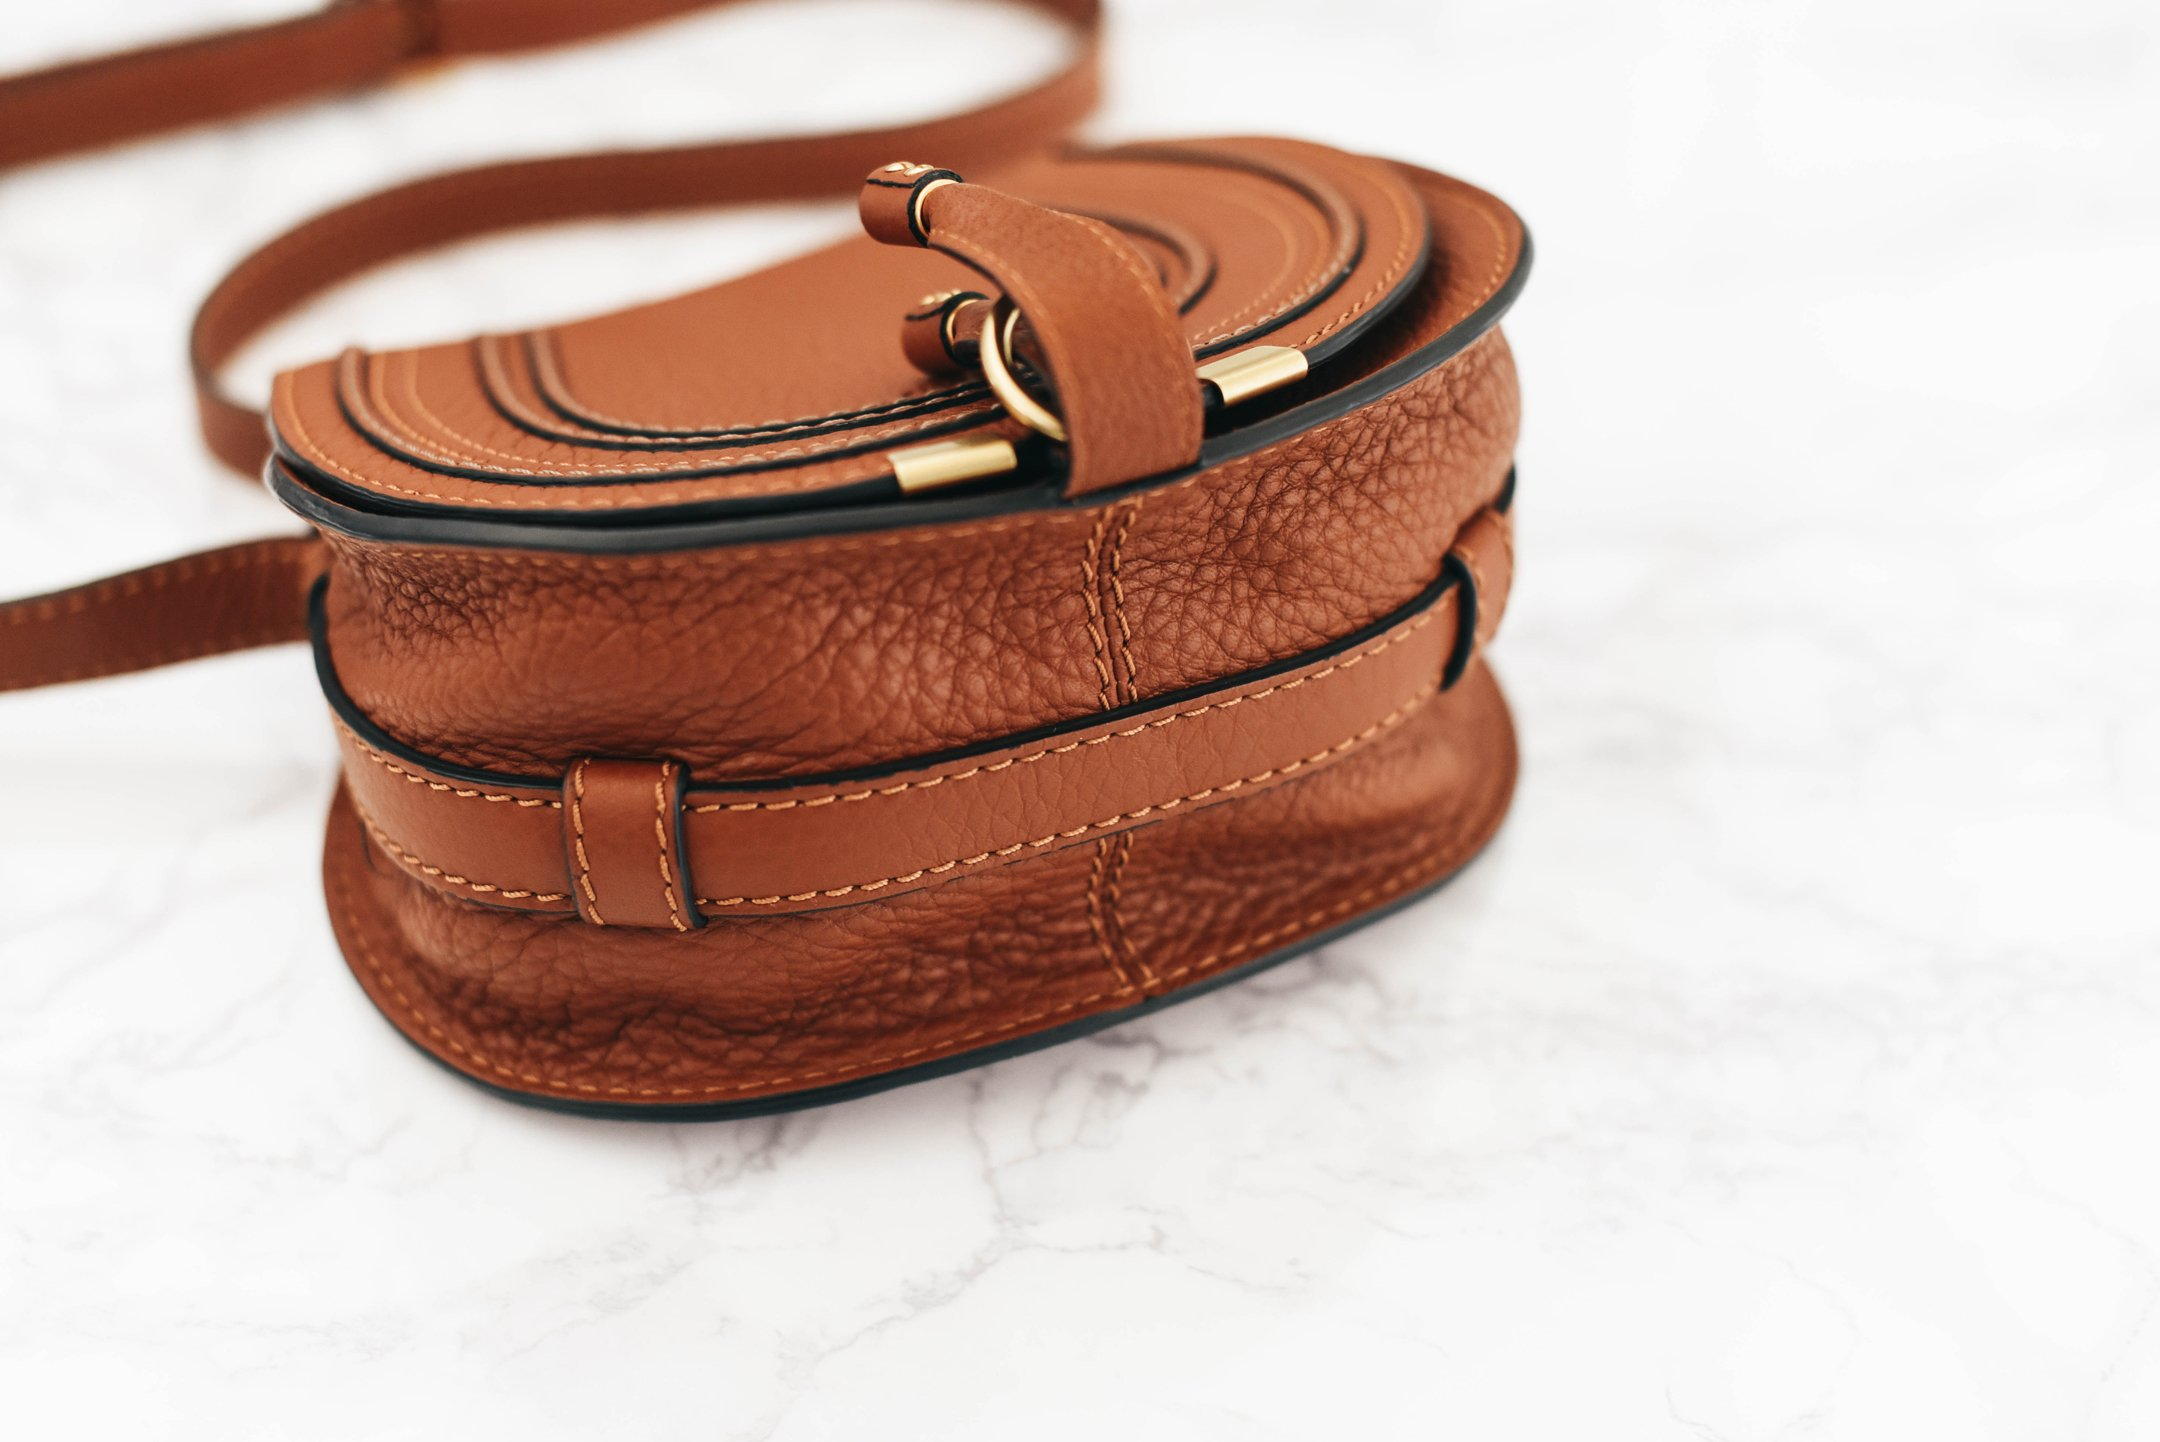 59f6255909 What's in my Bag + Chloé 'Small Marcie' Leather Crossbody Bag Review ...